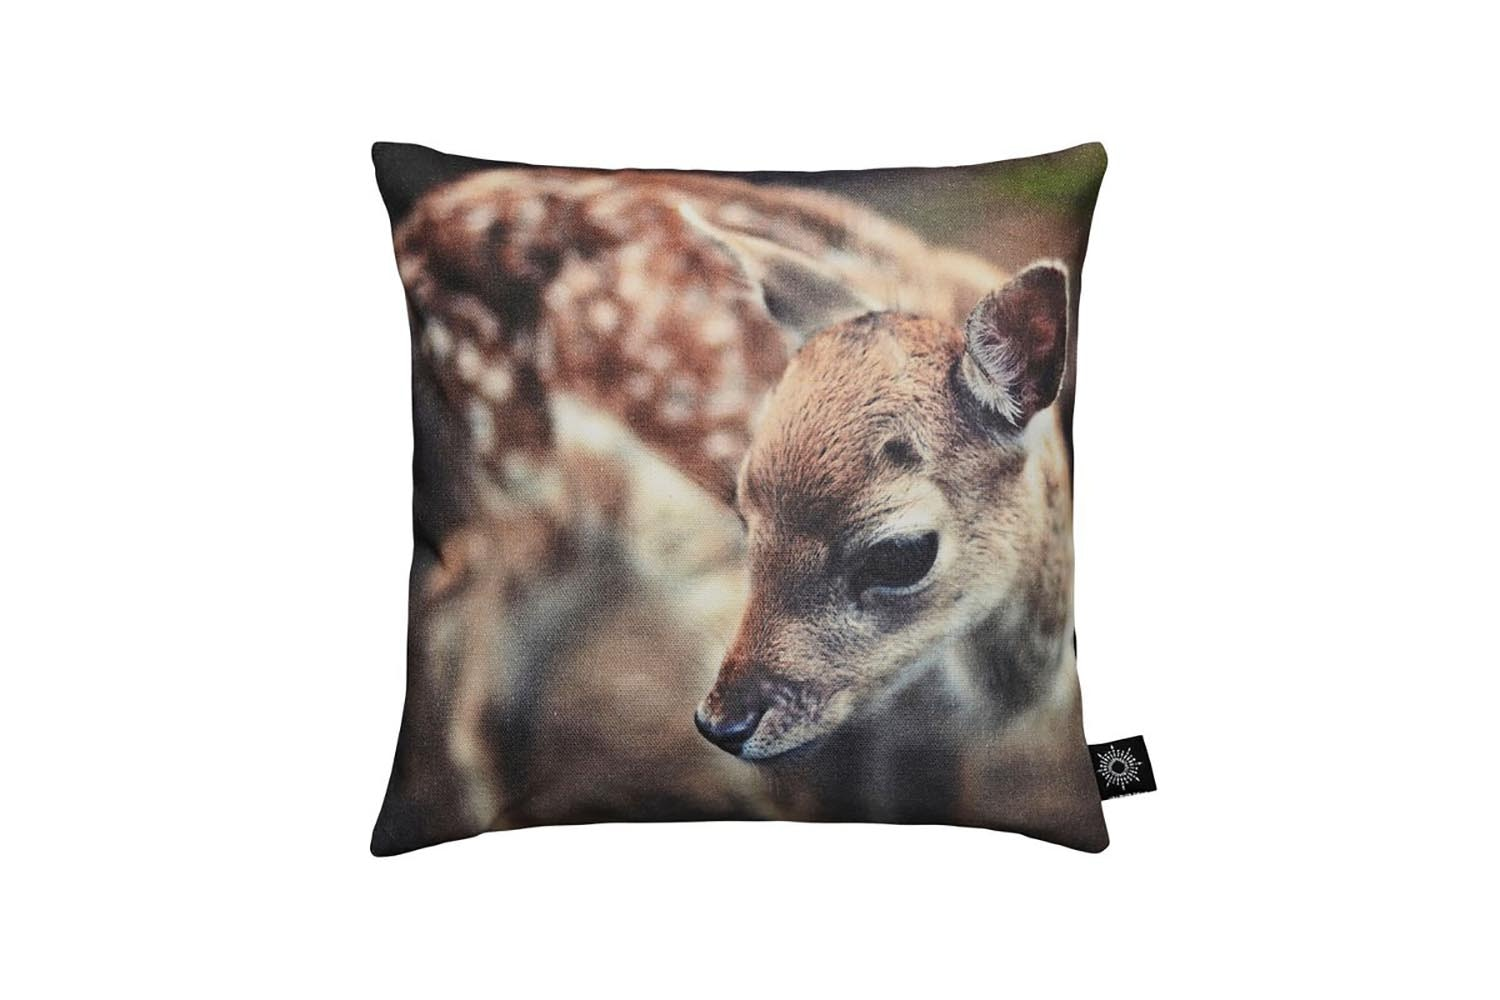 Baby Deer Cushion Cover 30x30cm by By Nord Copenhagen